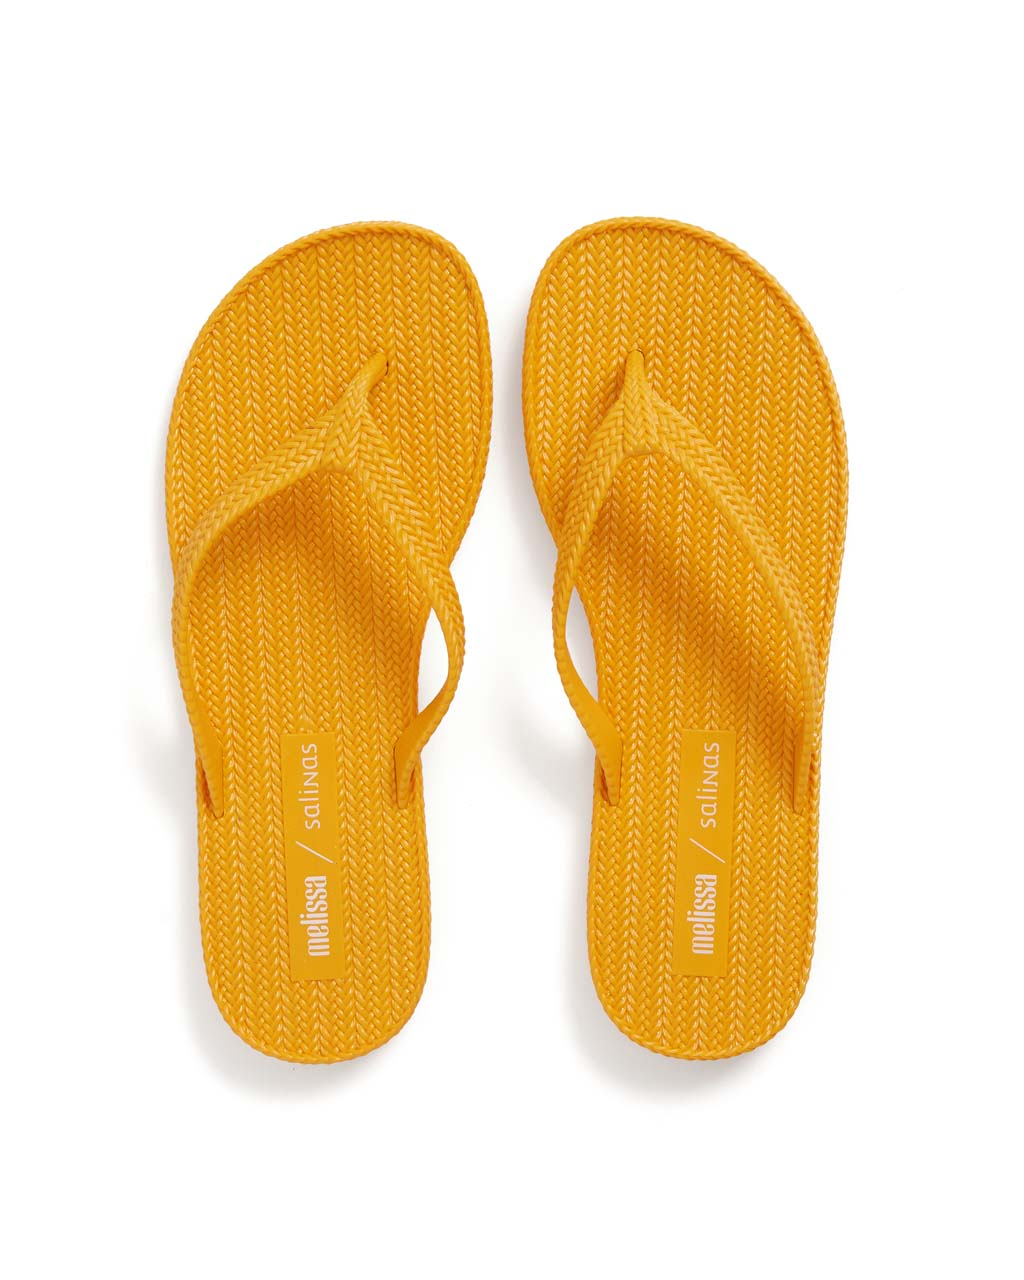 67534cb8a Braided Flip Flop - Yellow Orange by melissa shoes - shoes - ban.do